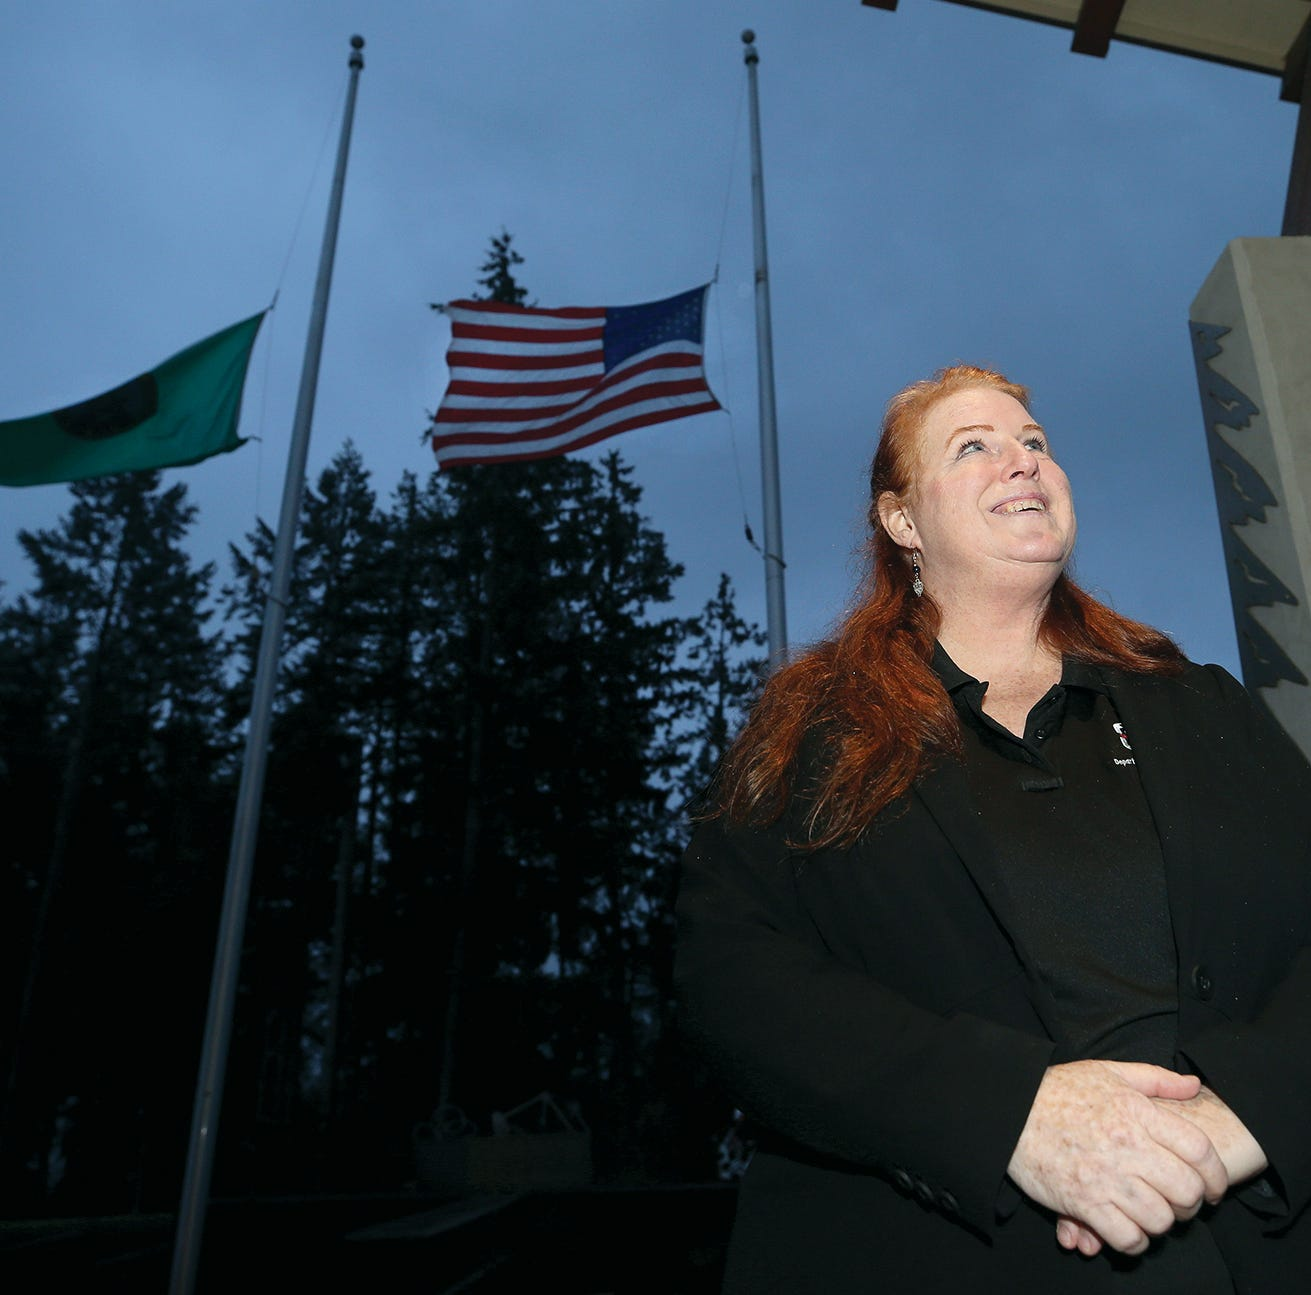 Kitsap's new emergency director helped deadly Amtrak crash response